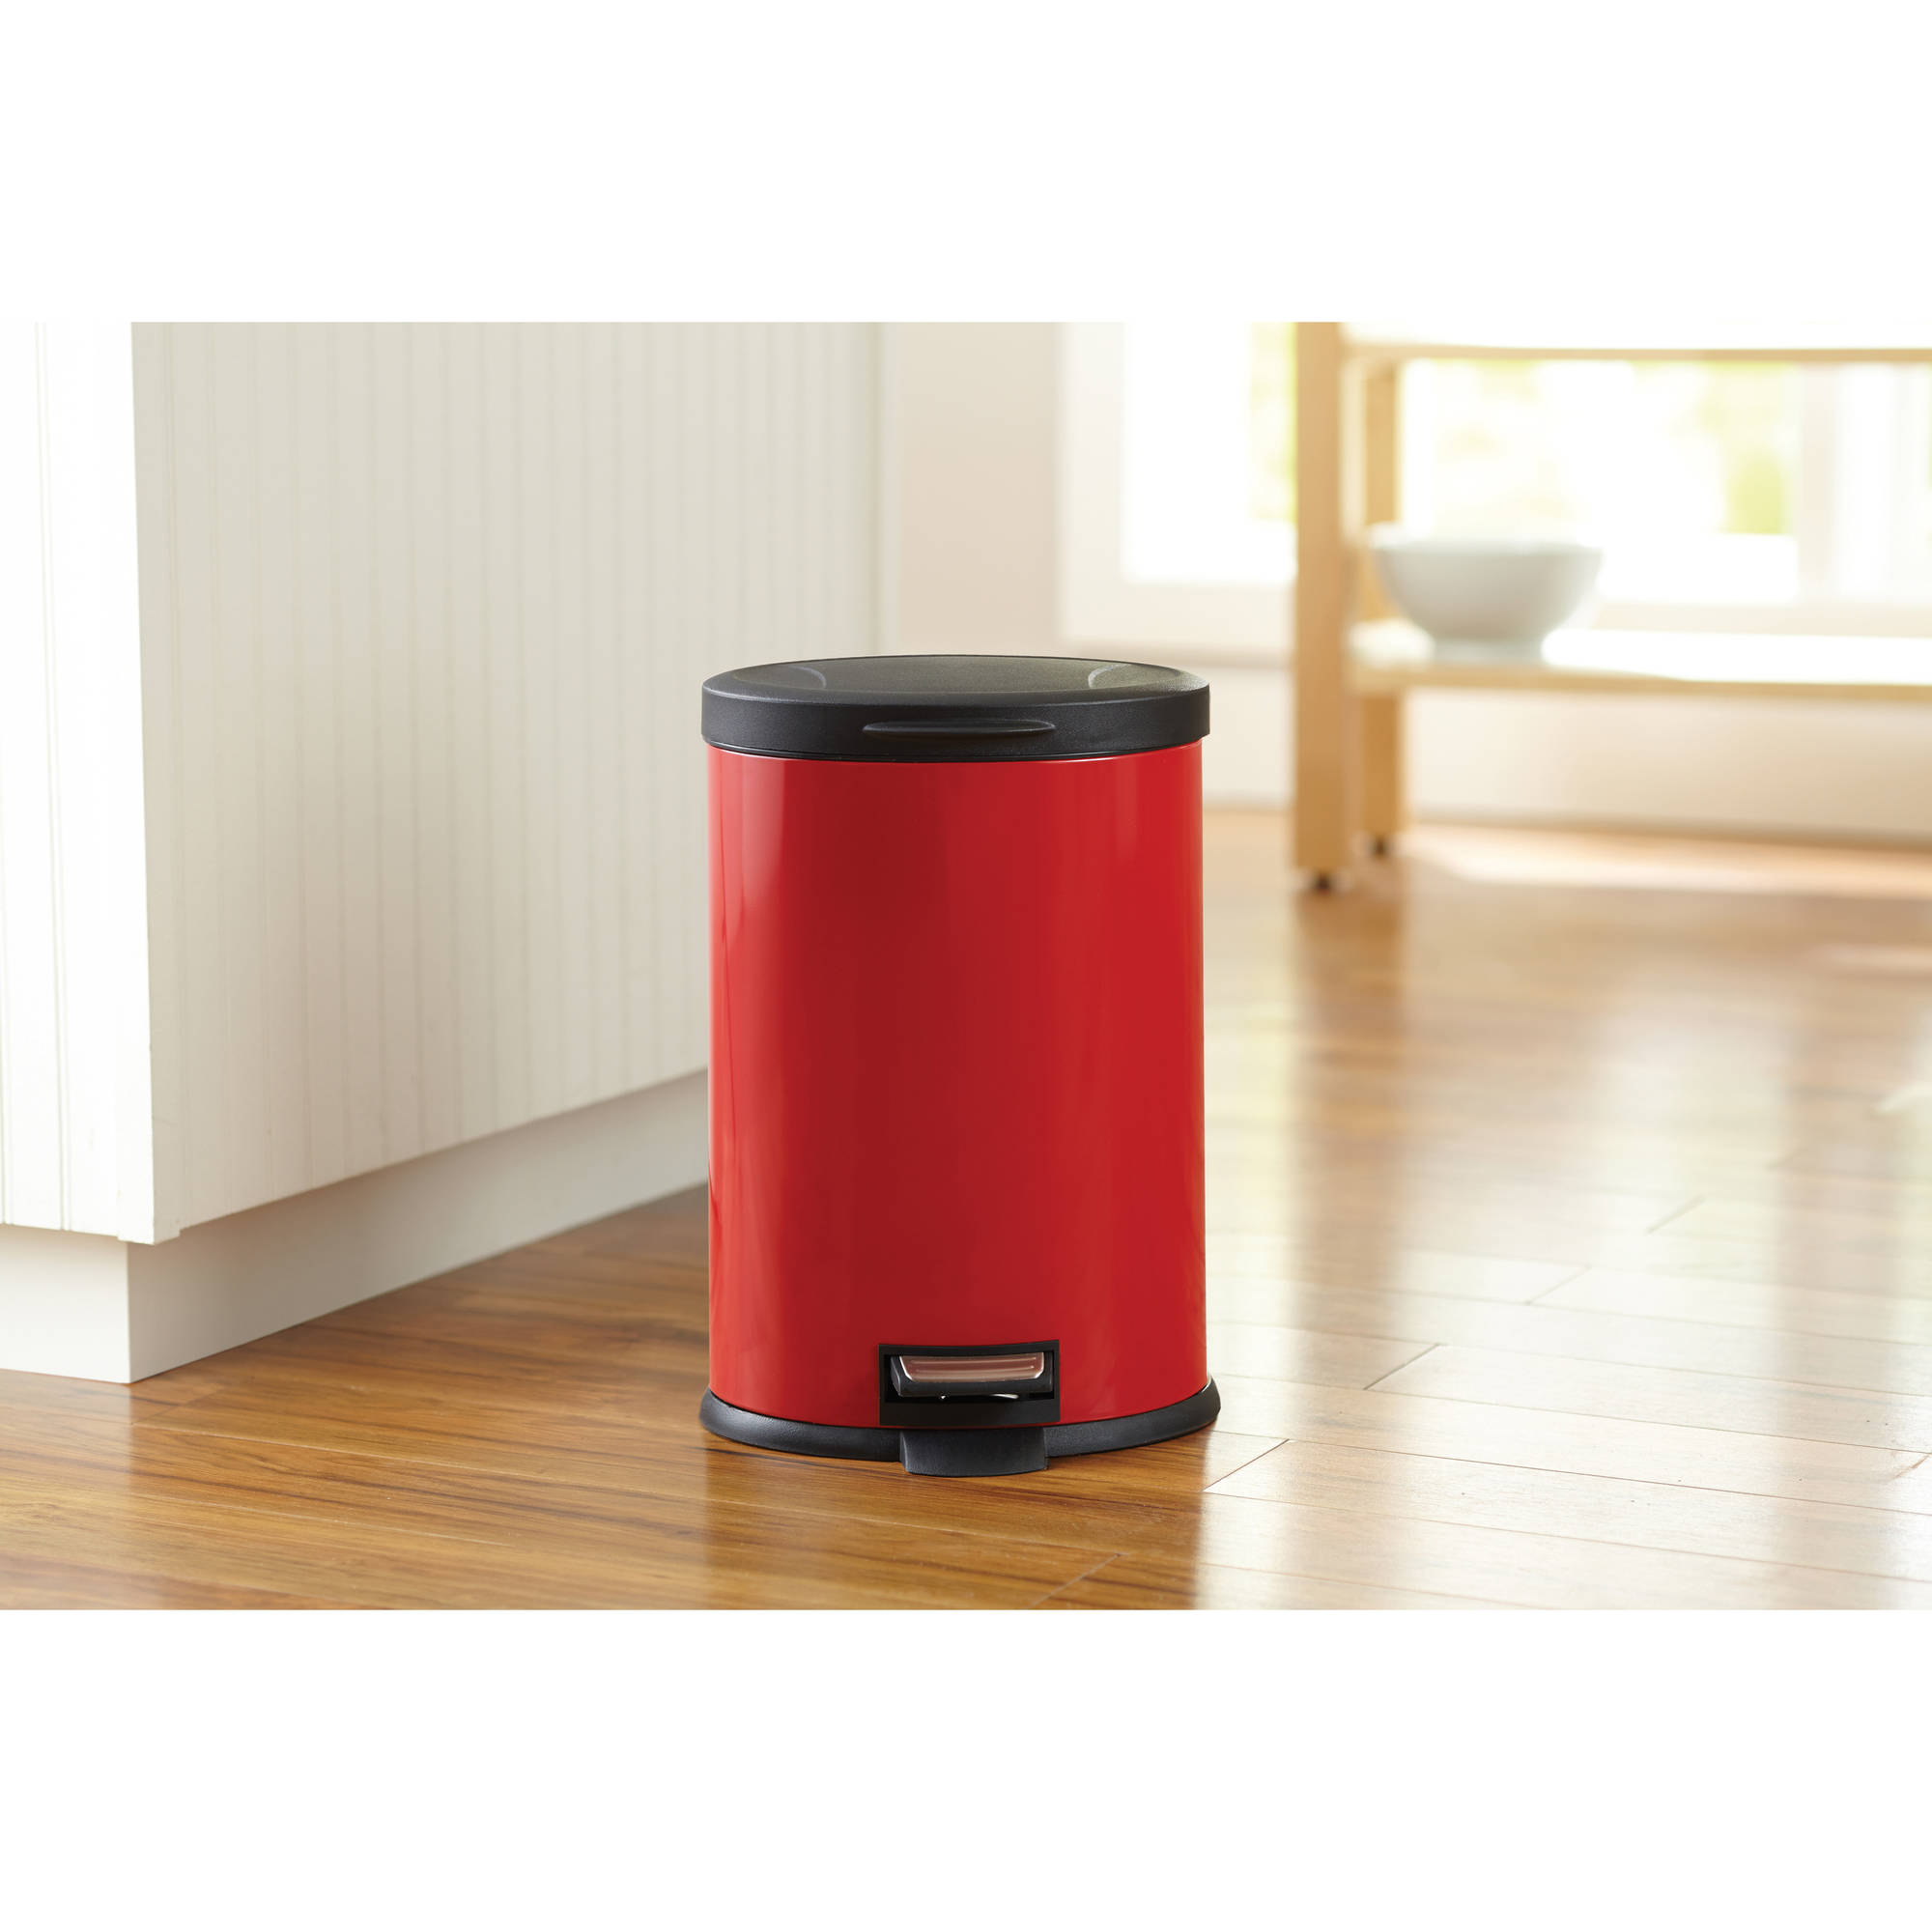 Better homes and gardens 3 2 gallon oval trash can ebay - Better homes and gardens trash can ...